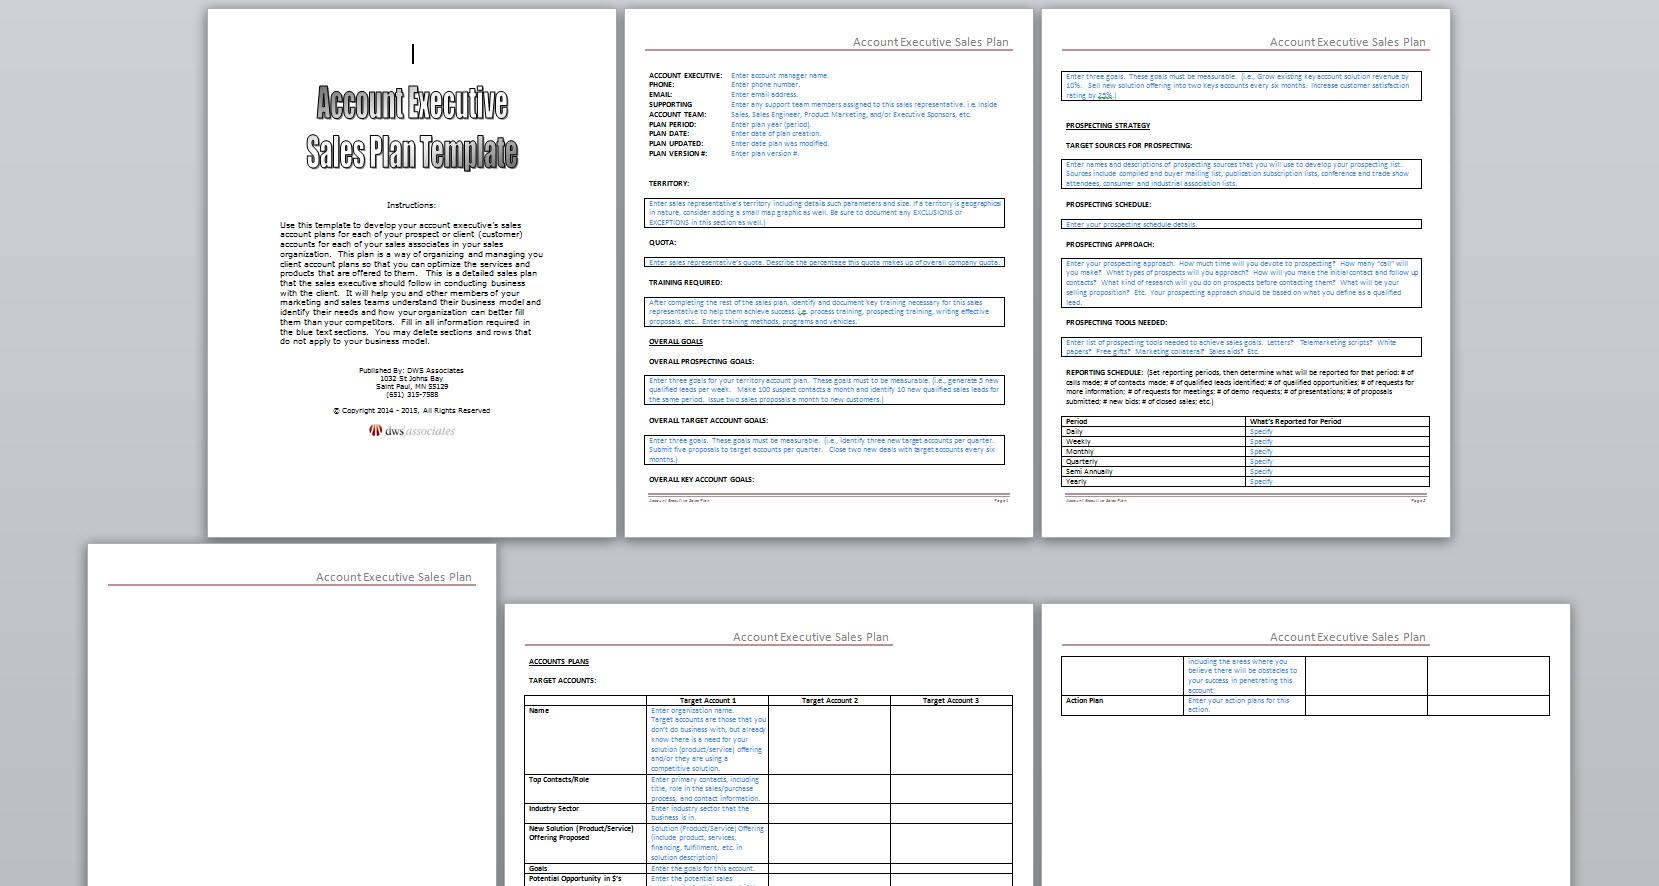 account executive sales plan template